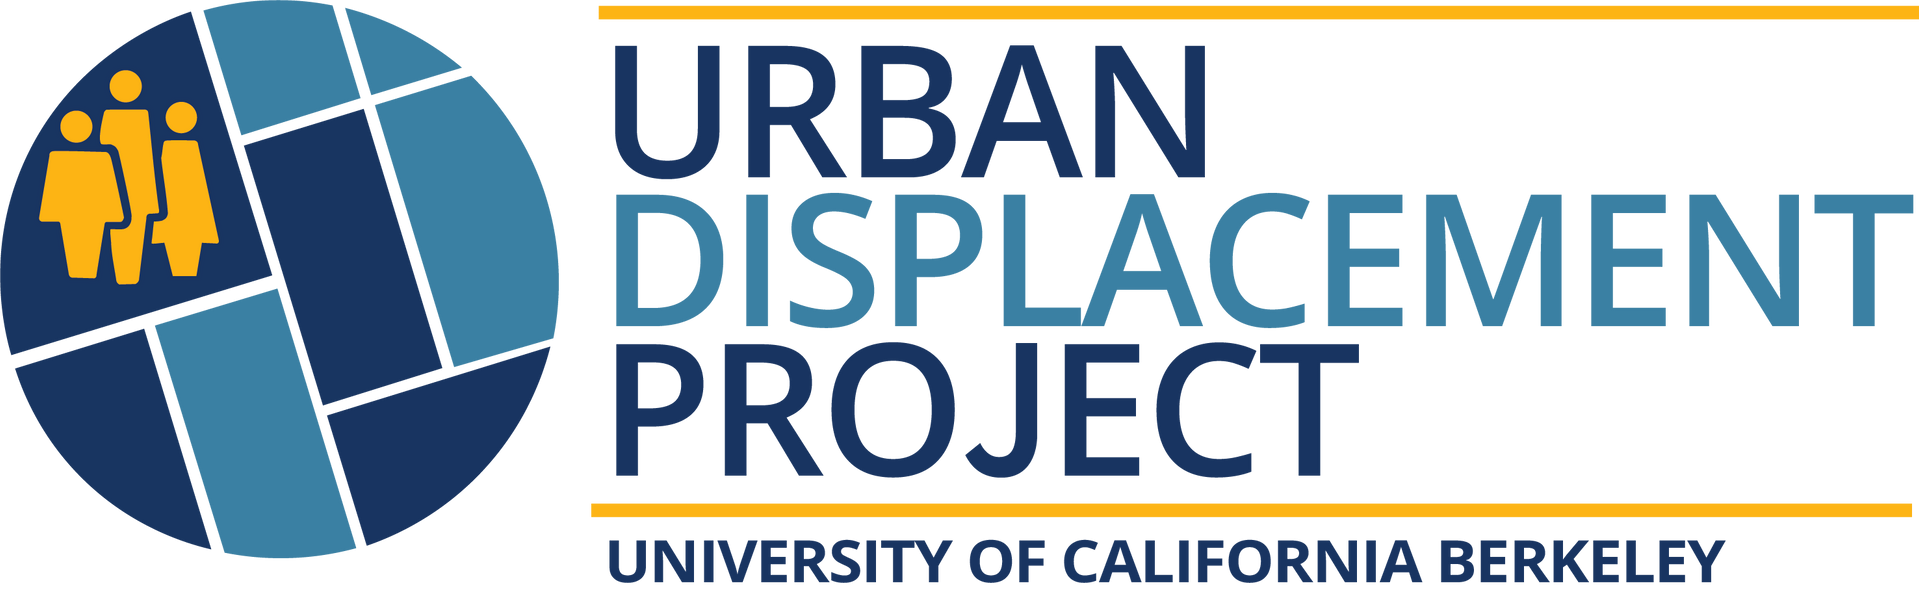 Urban Displacement Project Logo